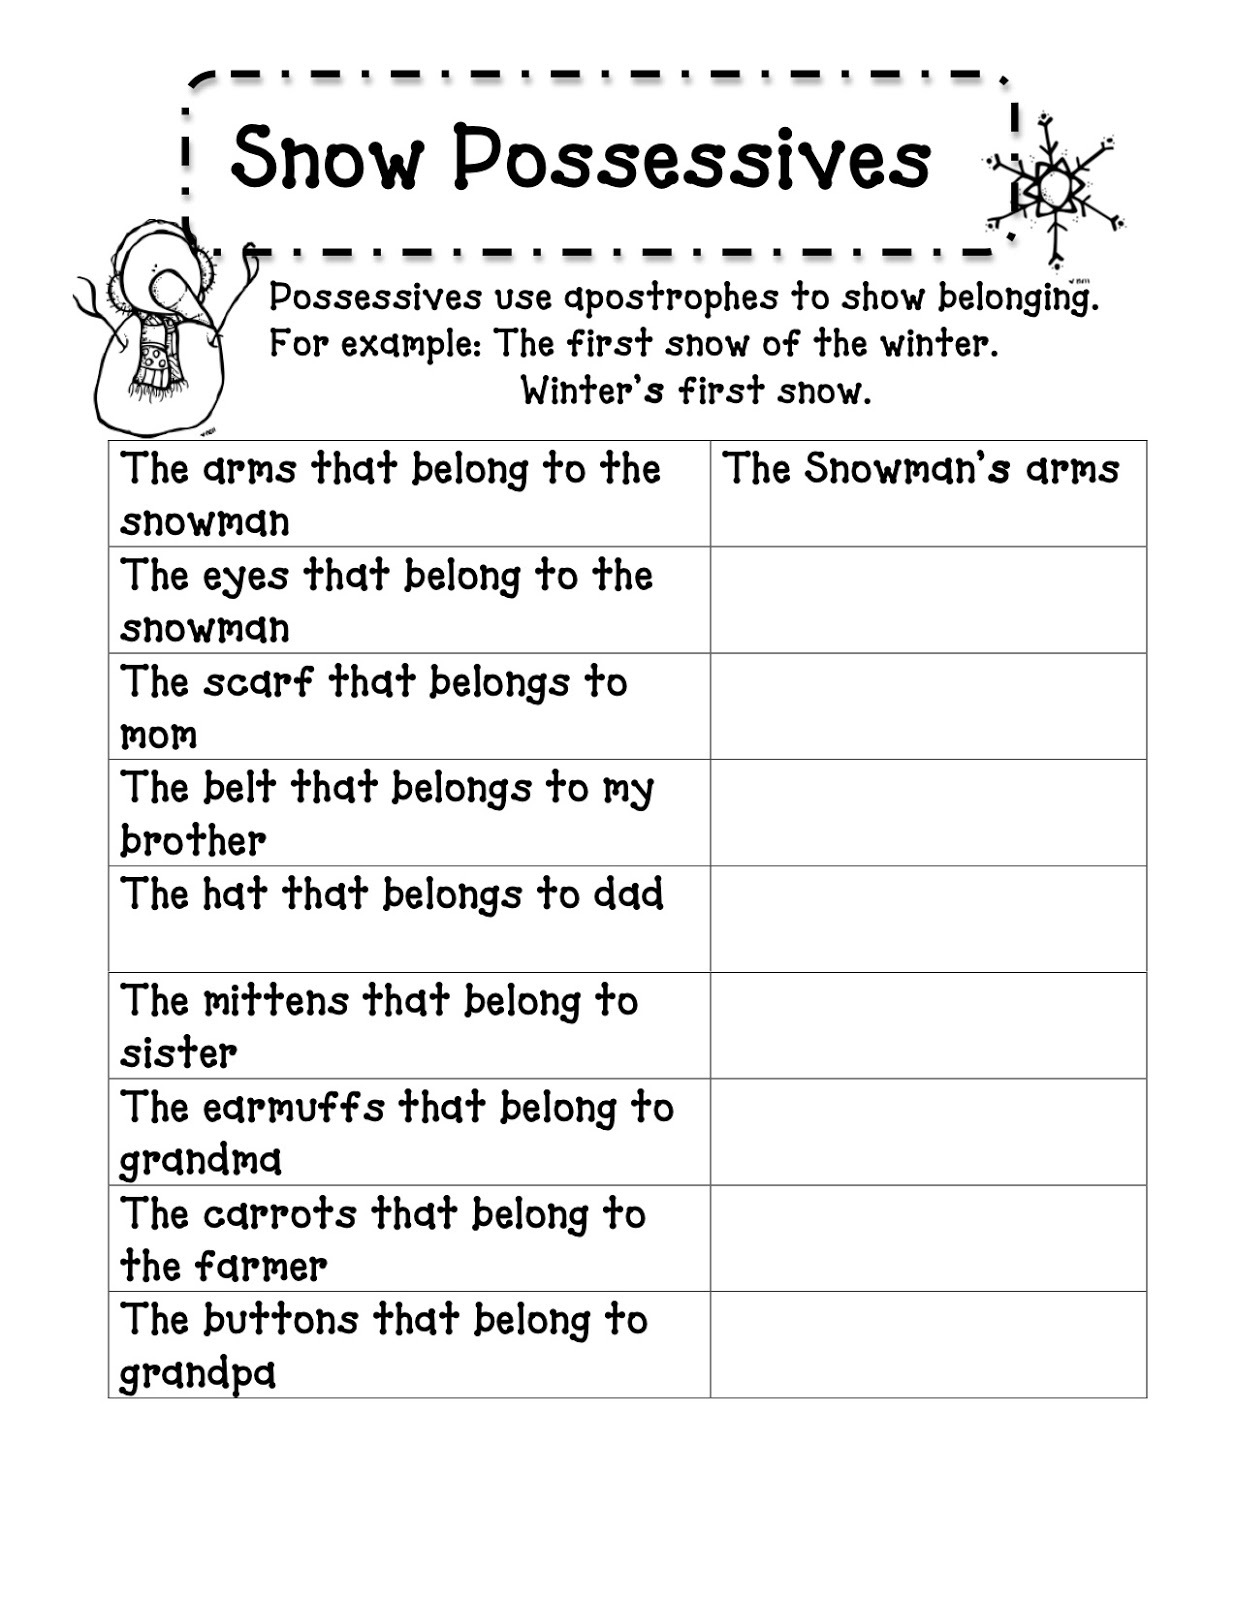 3 6 Free Resources Snow Possessives Poem And Activities